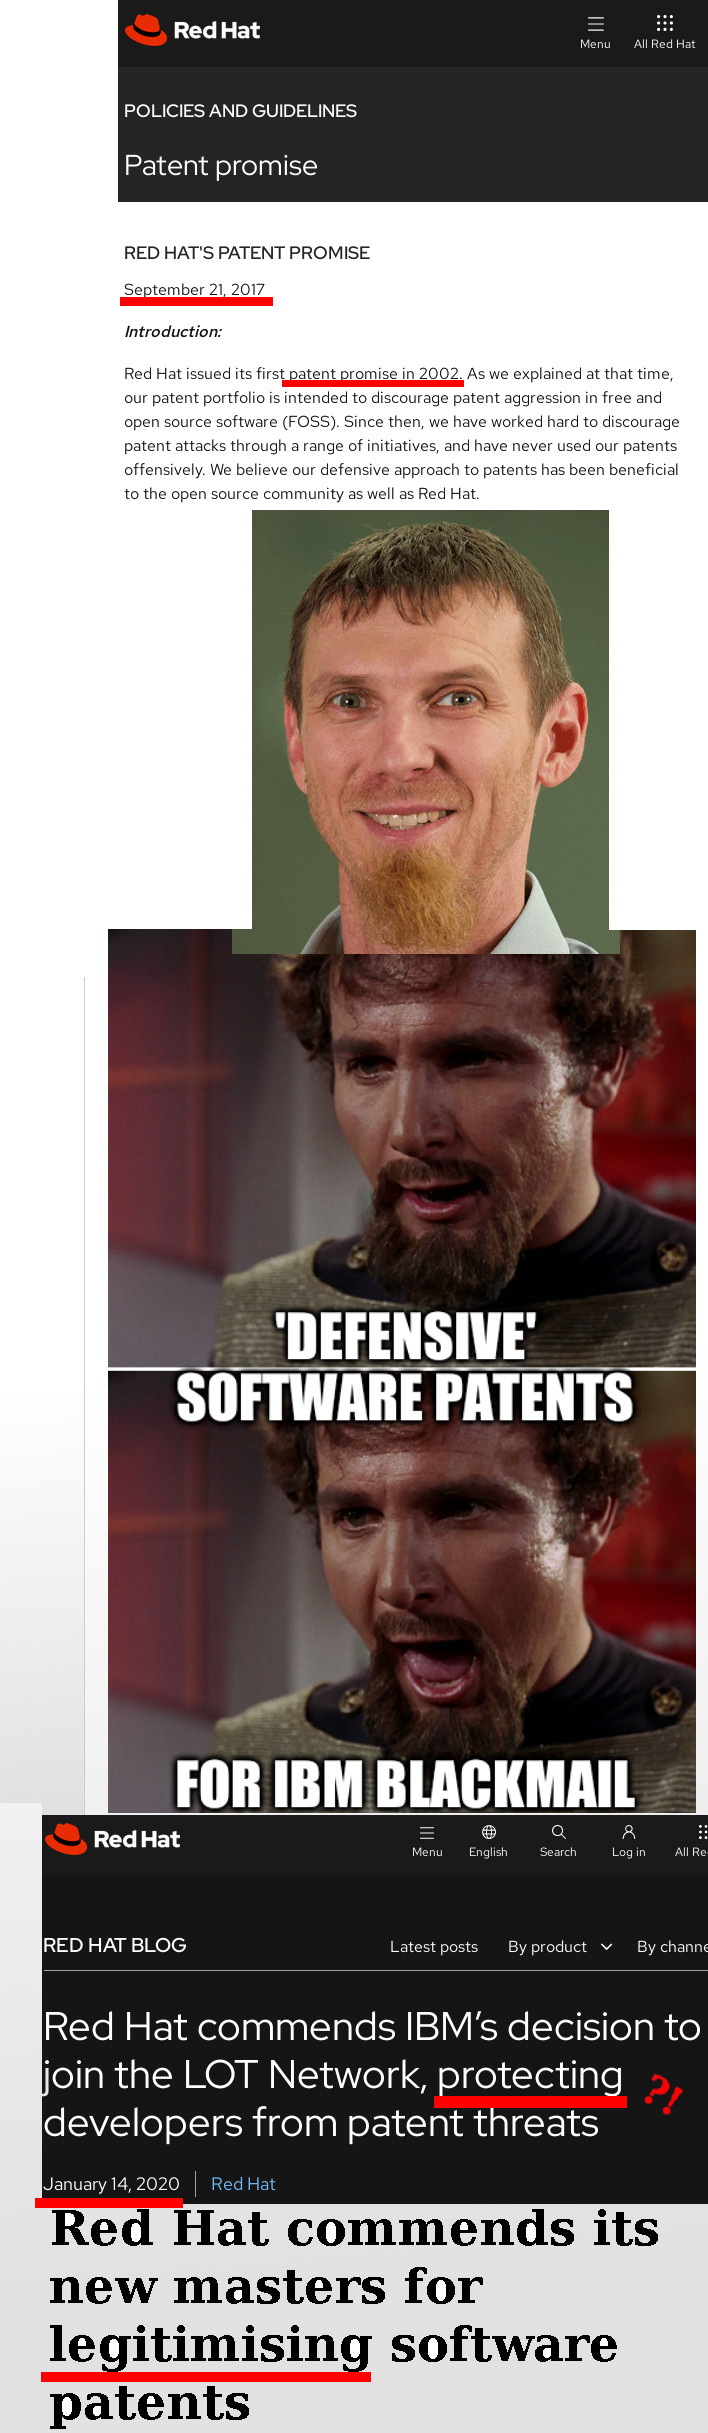 Star Trek Klingon insults: 'Defensive' software patents for IBM blackmail: Red Hat commends its new masters for legitimising software patents